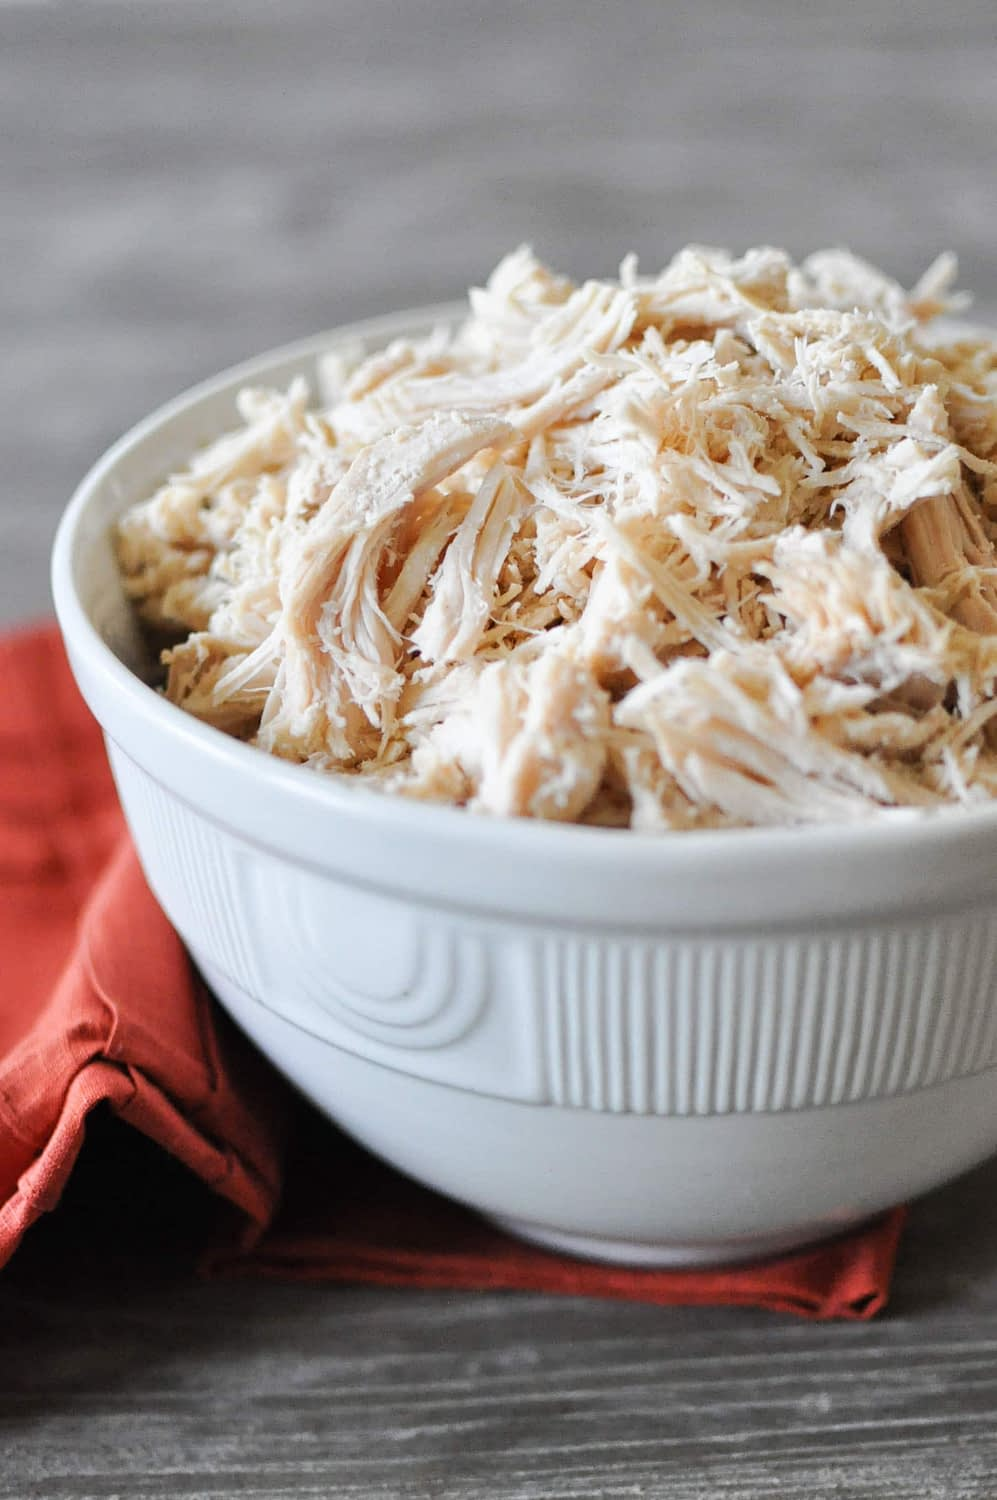 a white bowl on top of a red napkin sitting on a grey wooden table filled with cooked shredded chicken